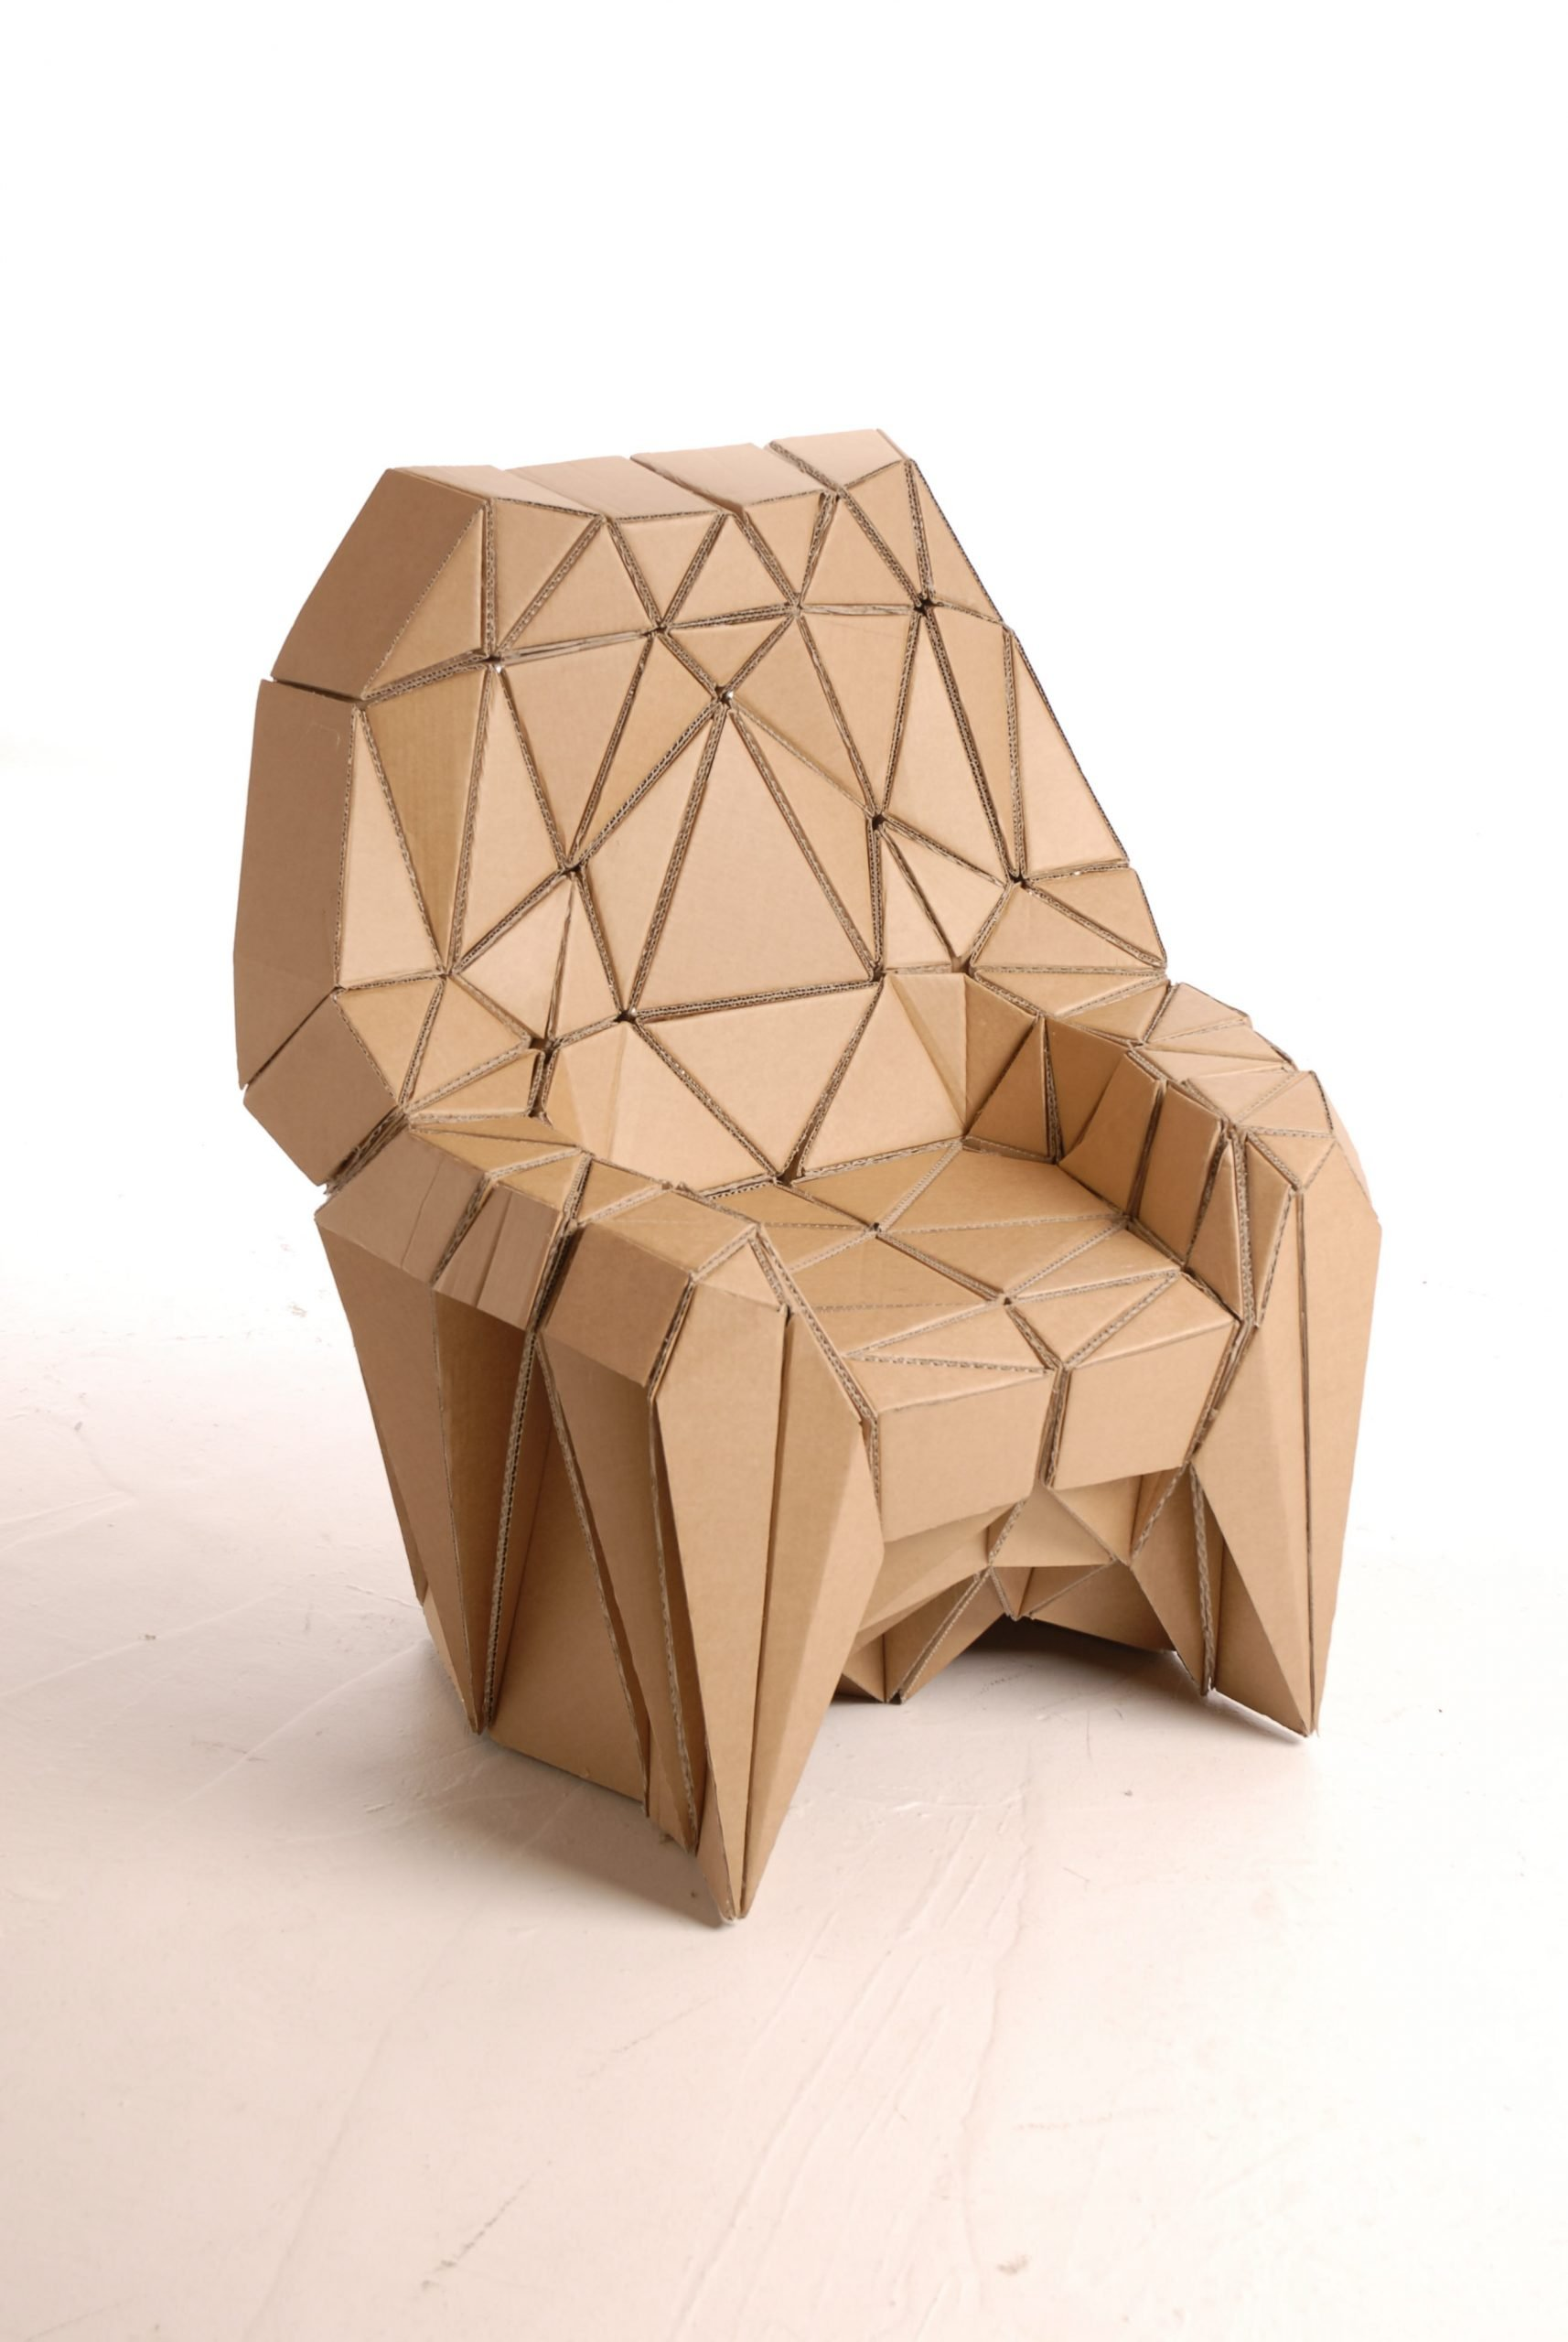 Cardboard chair made of thousand of creative cardboard individual triangular components that were glued together. Designed and created by design stuido Lazerian as part of their honeycomb series of furniture